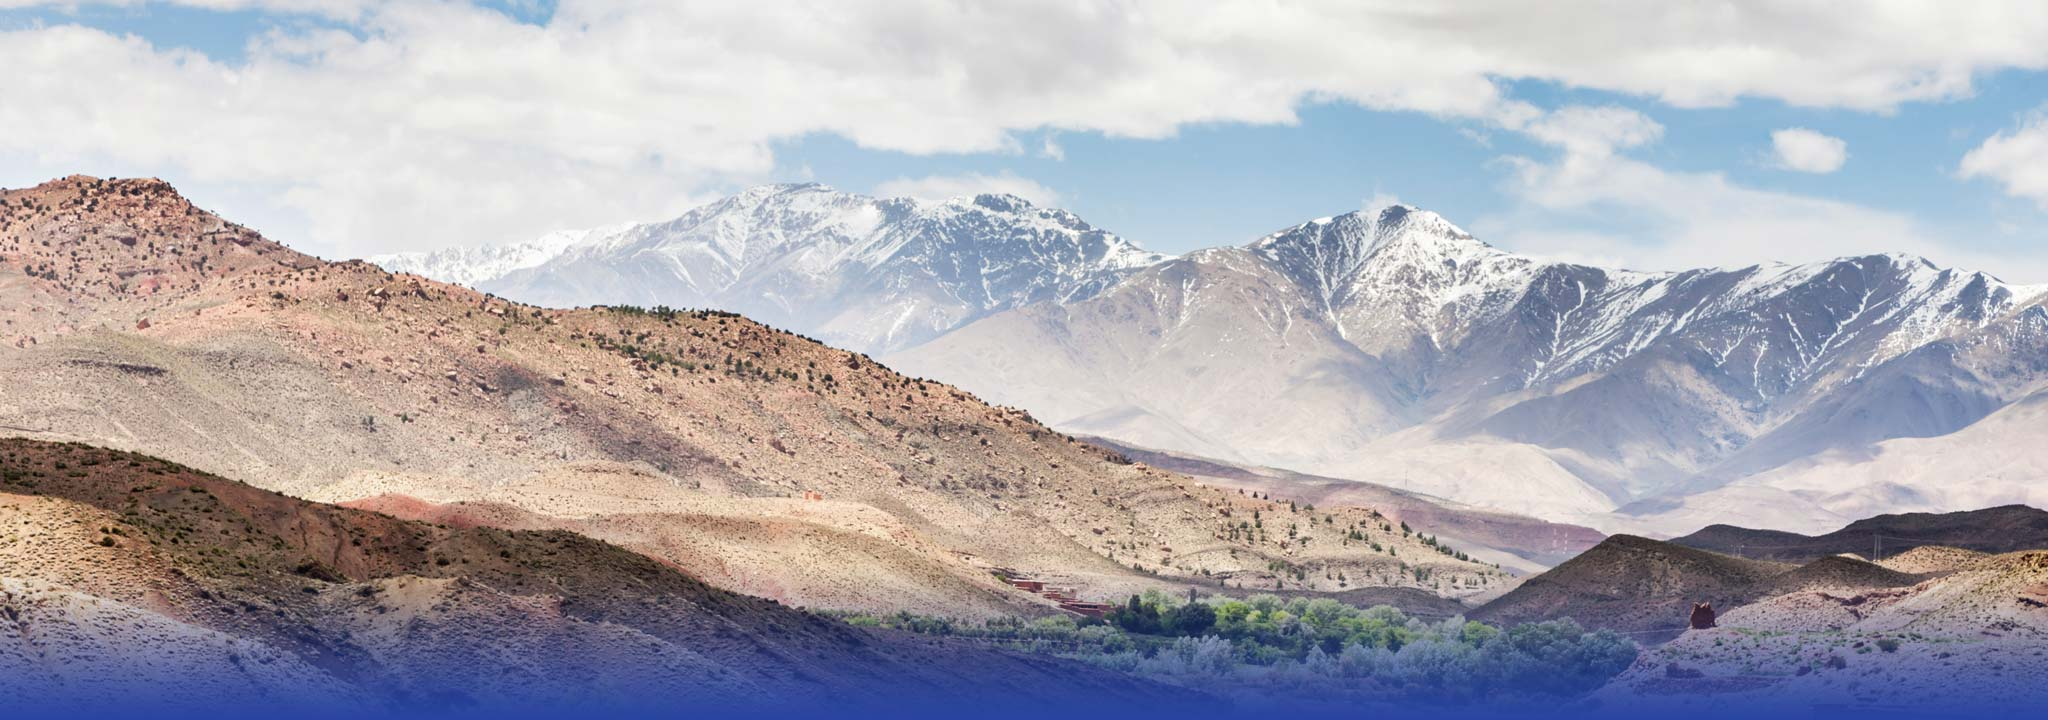 The Atlas Mountains – Hiking- and trekkingtours at 4000 m altitude